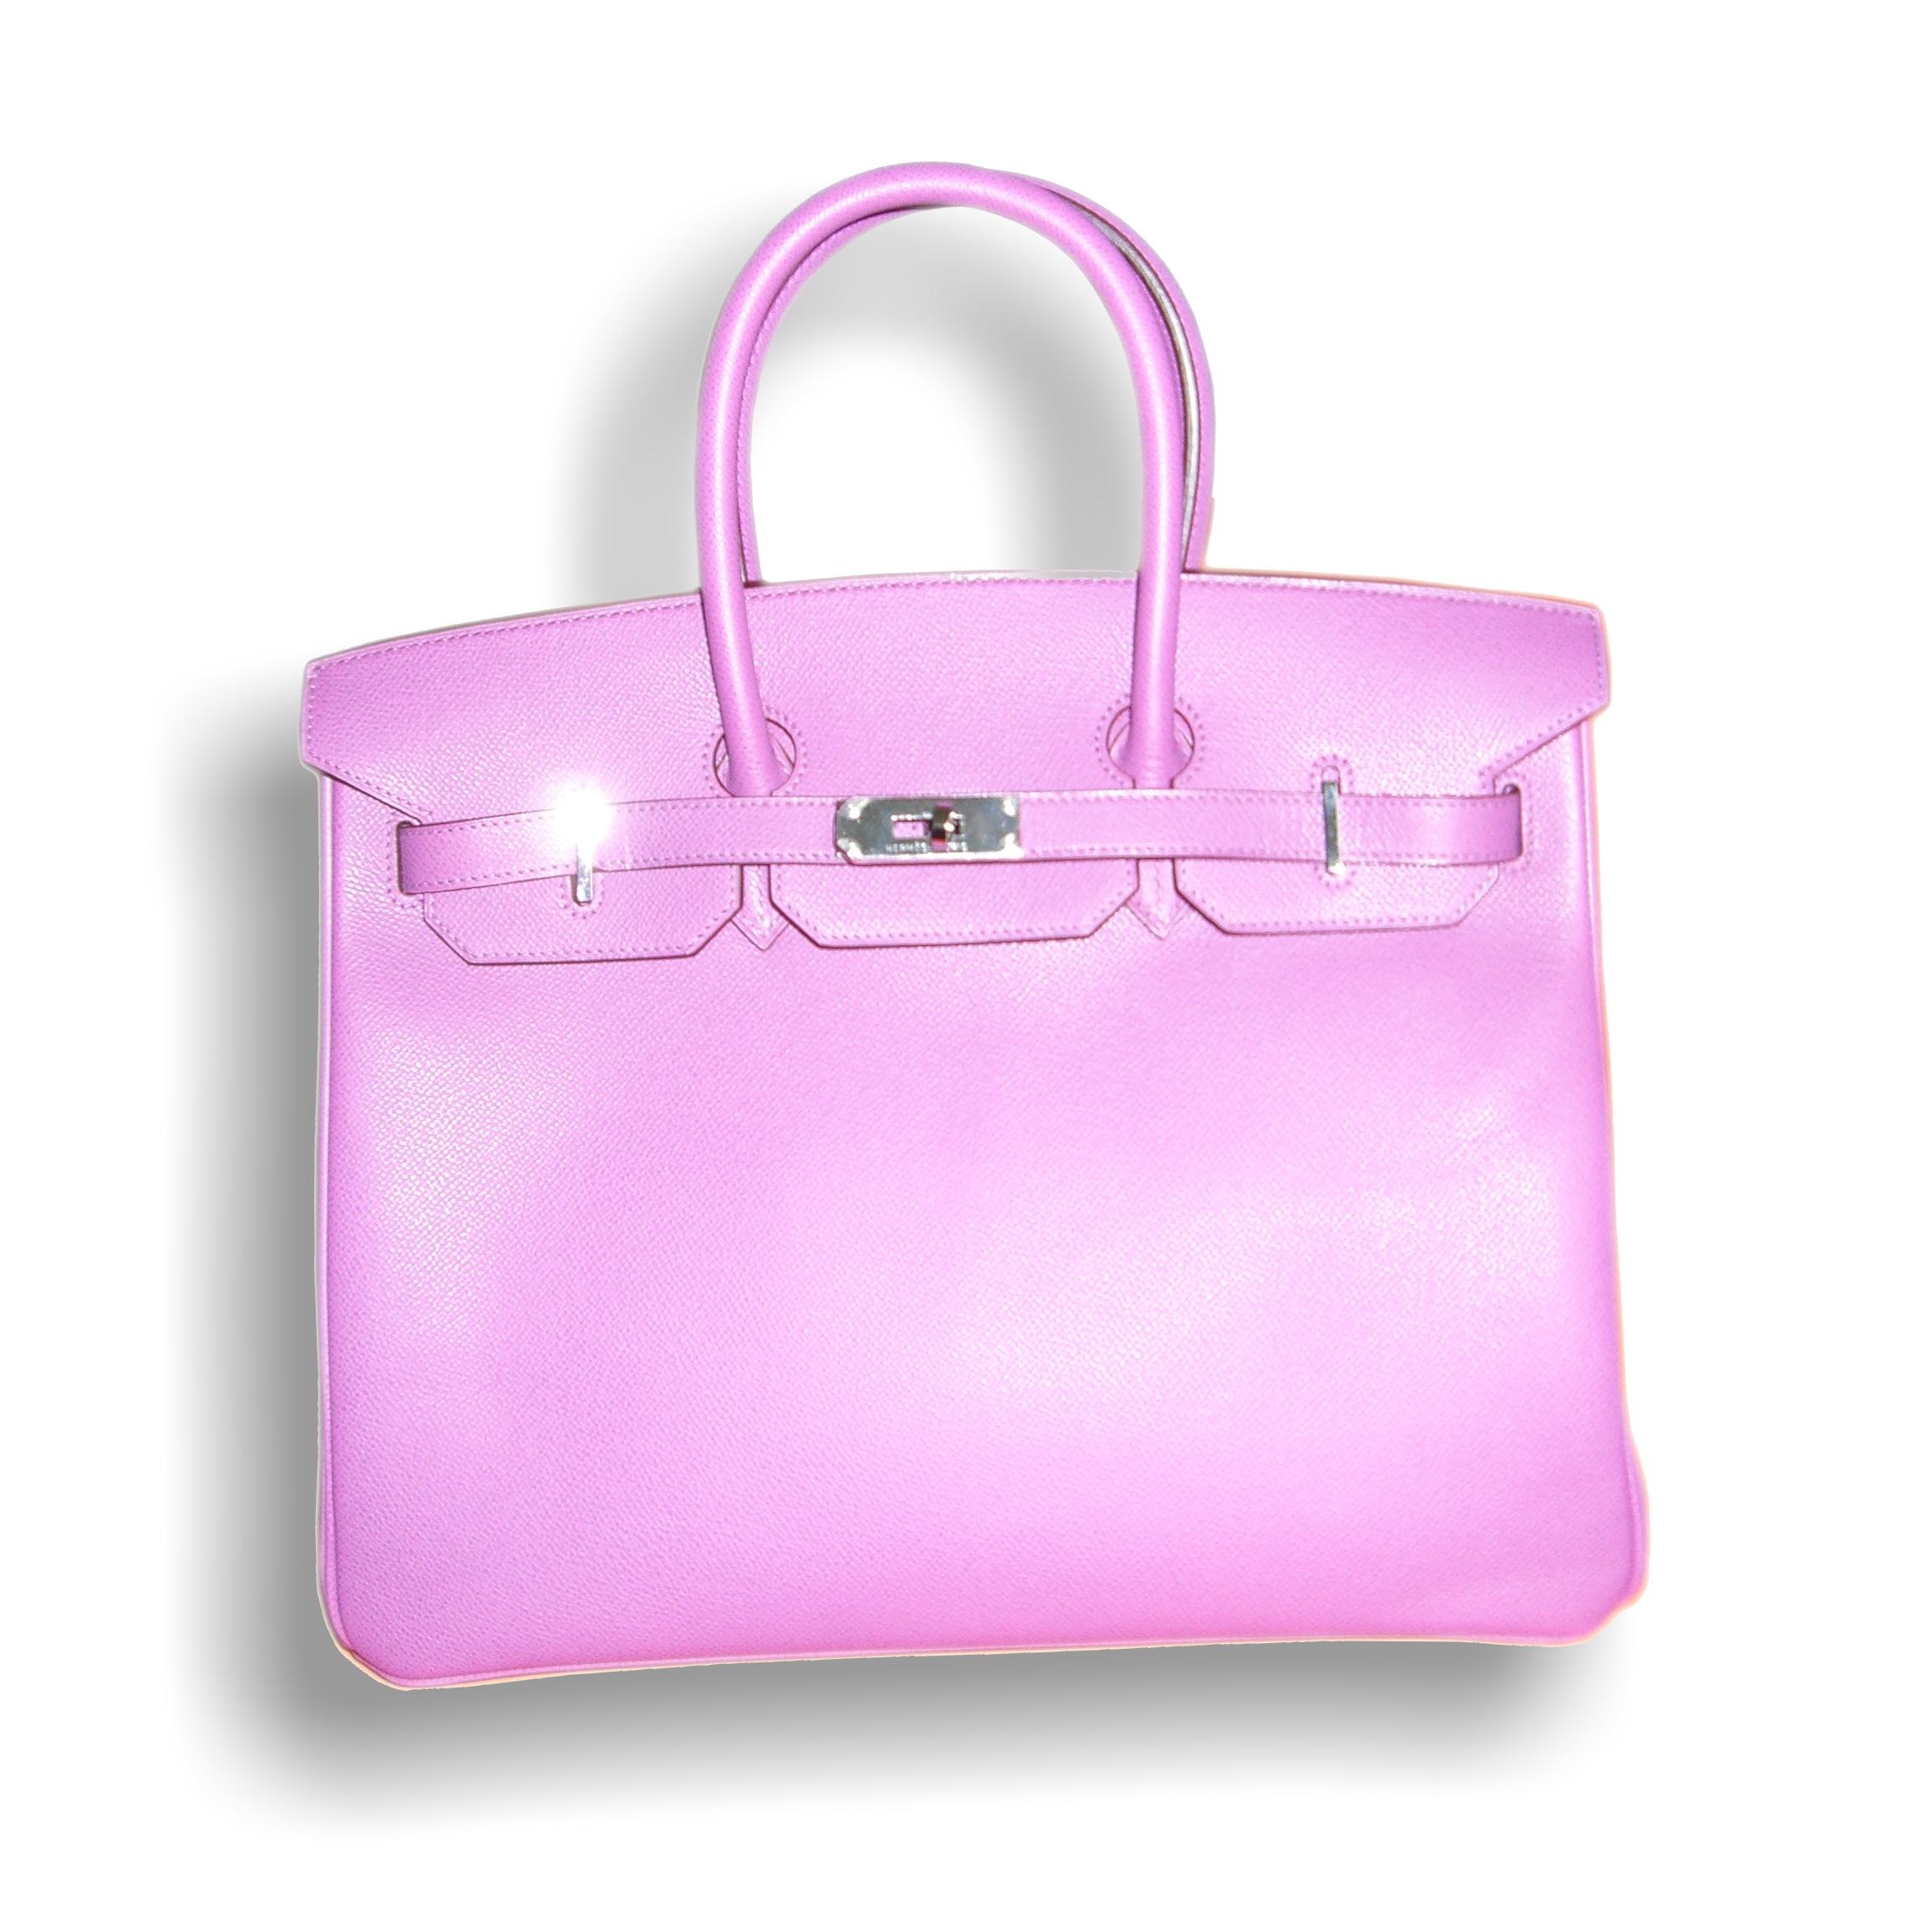 hermes birkin bag wikipedia